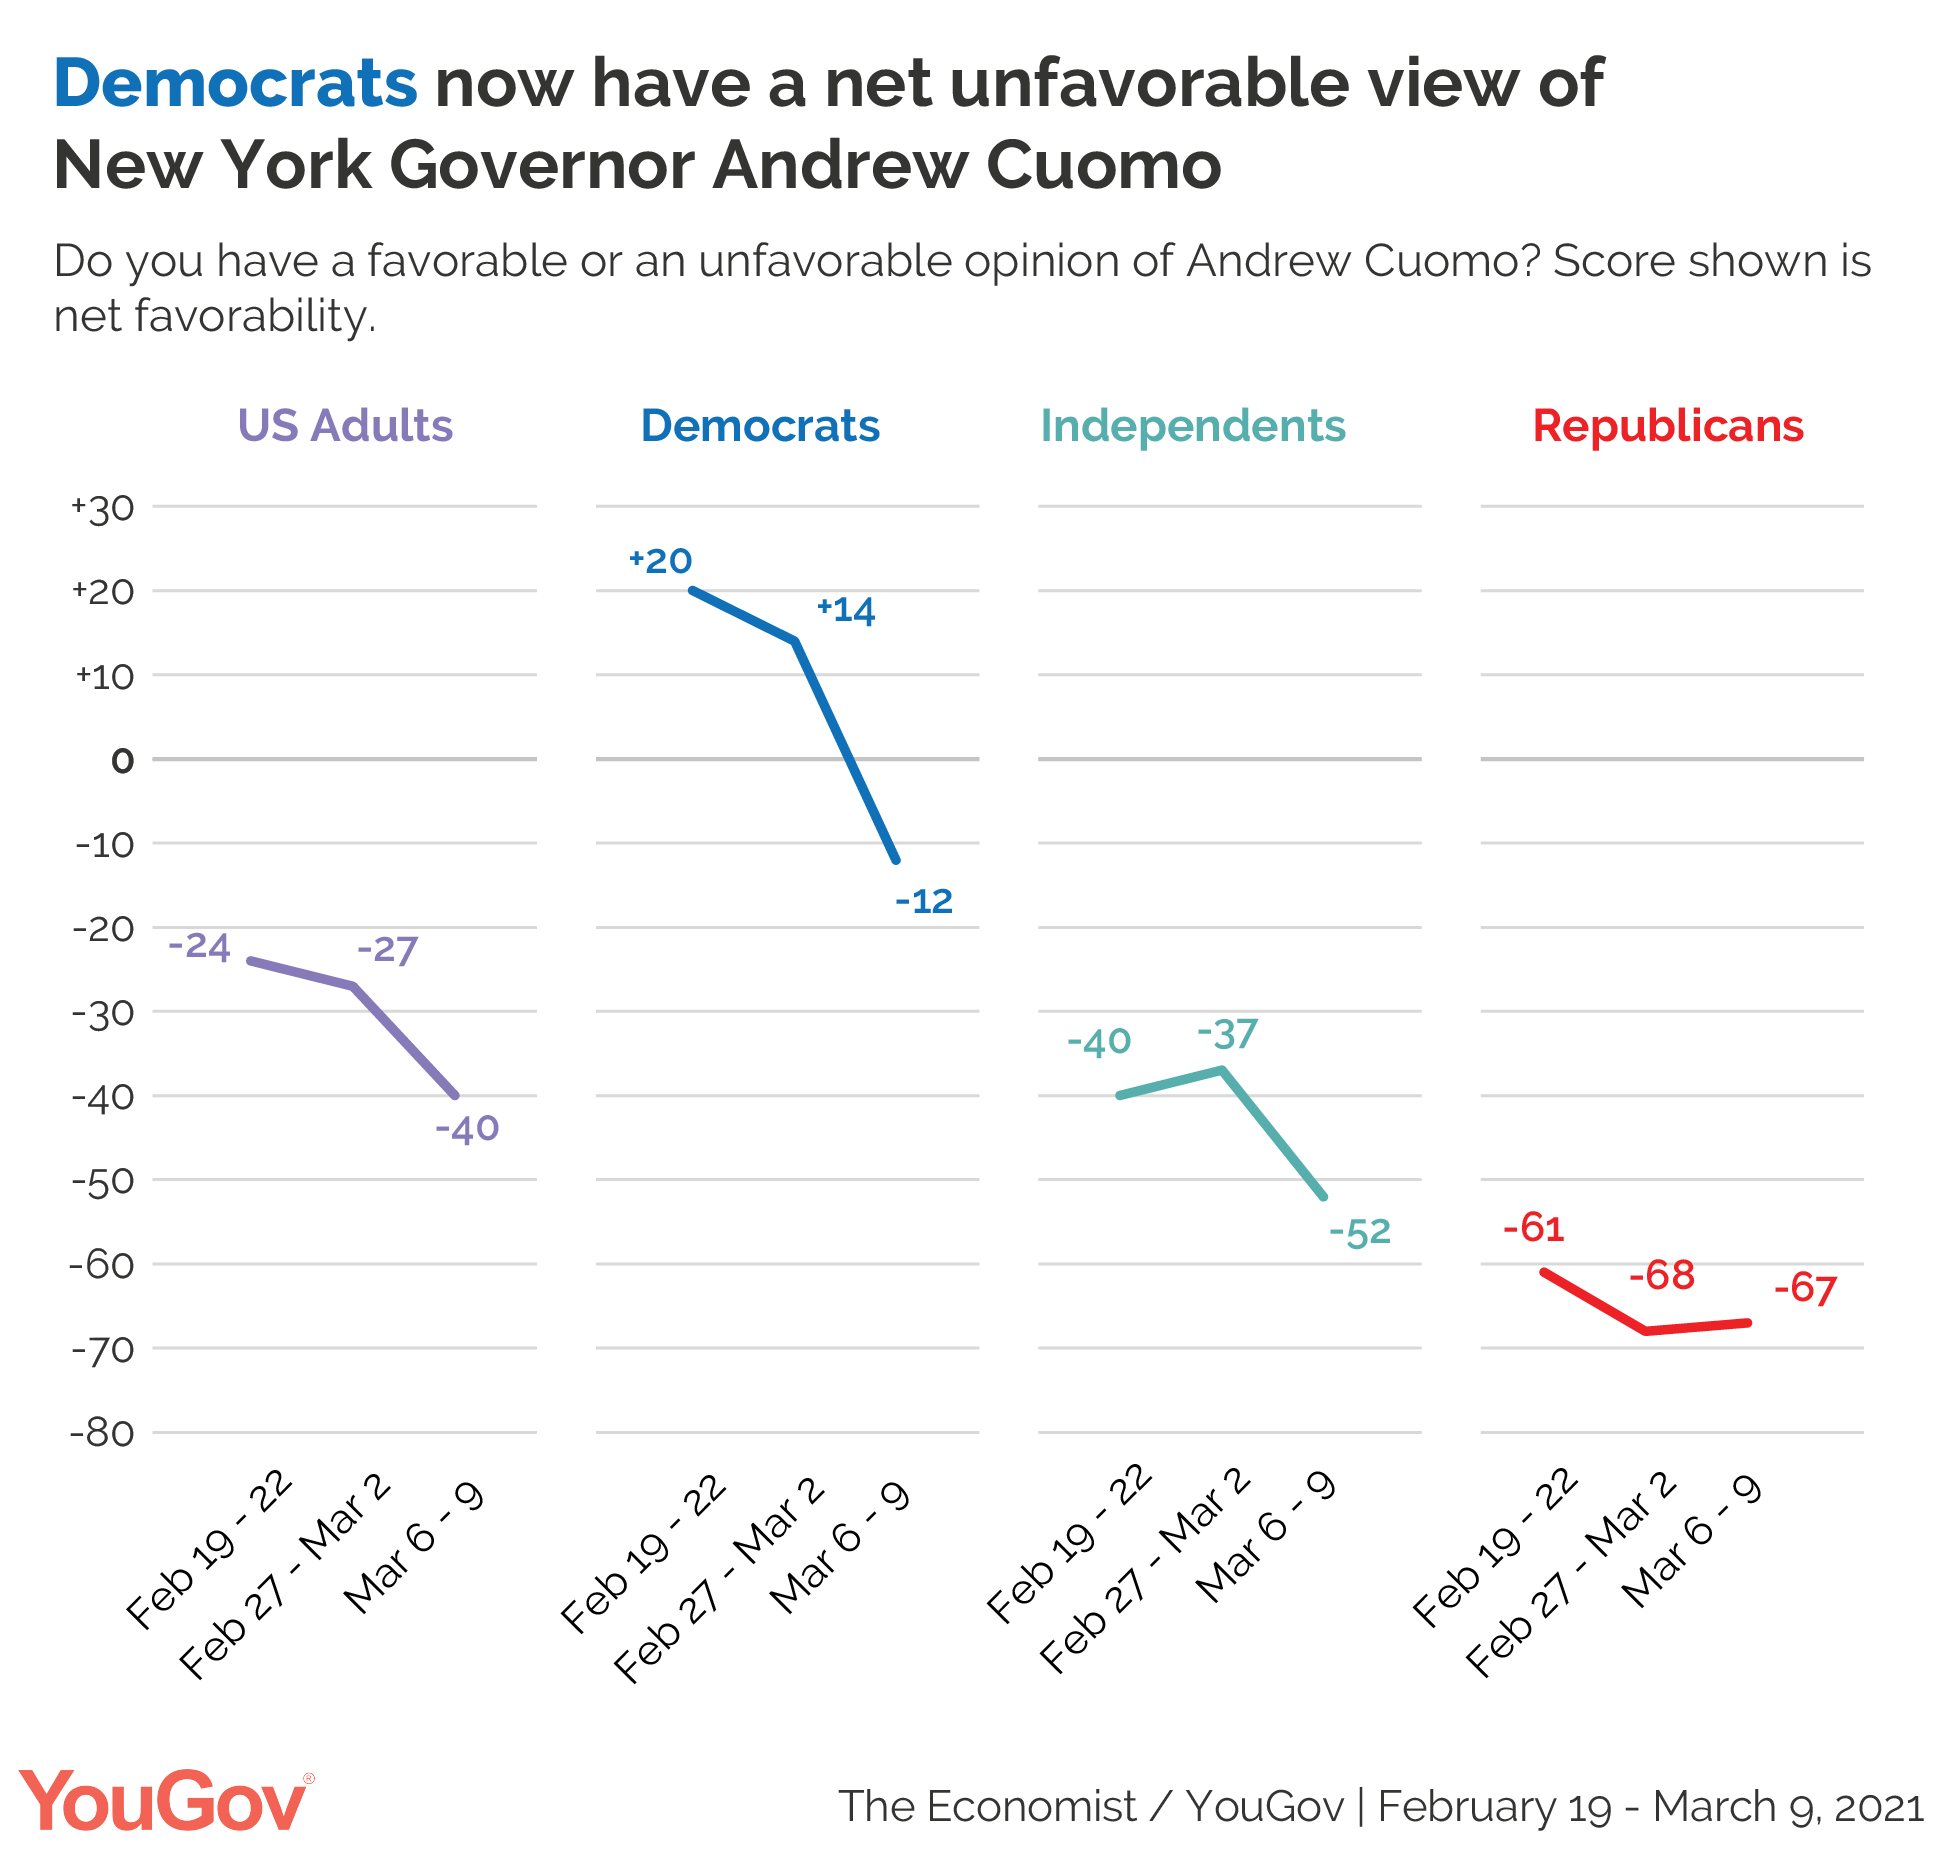 Andrew Cuomo's favorability ratings by political party